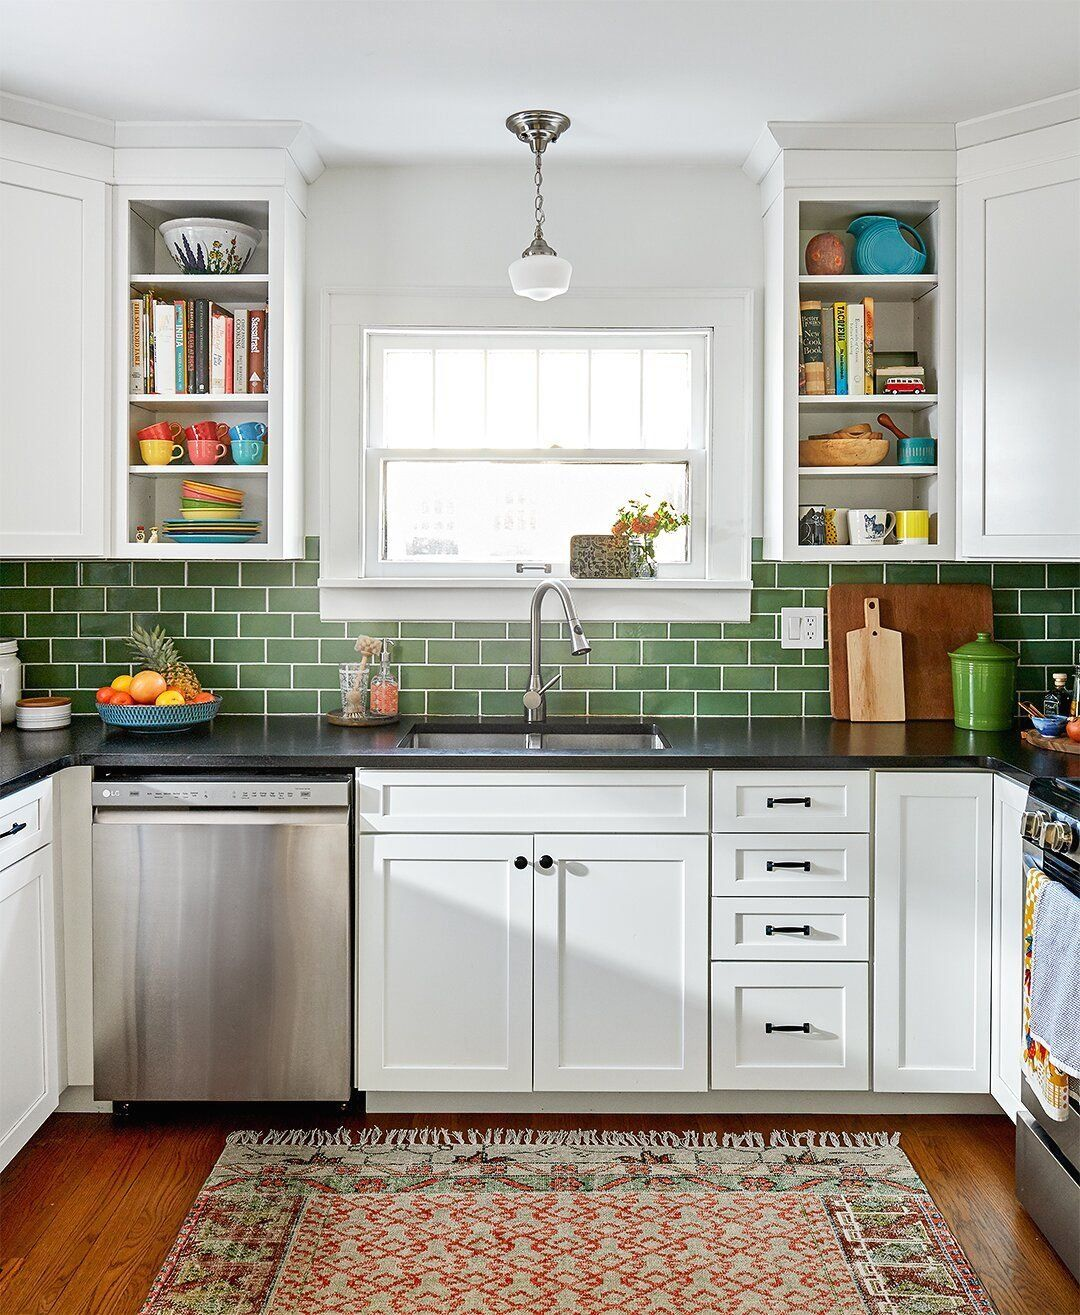 Learn How To Choose Livable Colors For Your Home 1000 In 2020 Kitchen Decor Apartment Backsplash Kitchen White Cabinets Apartment Kitchen